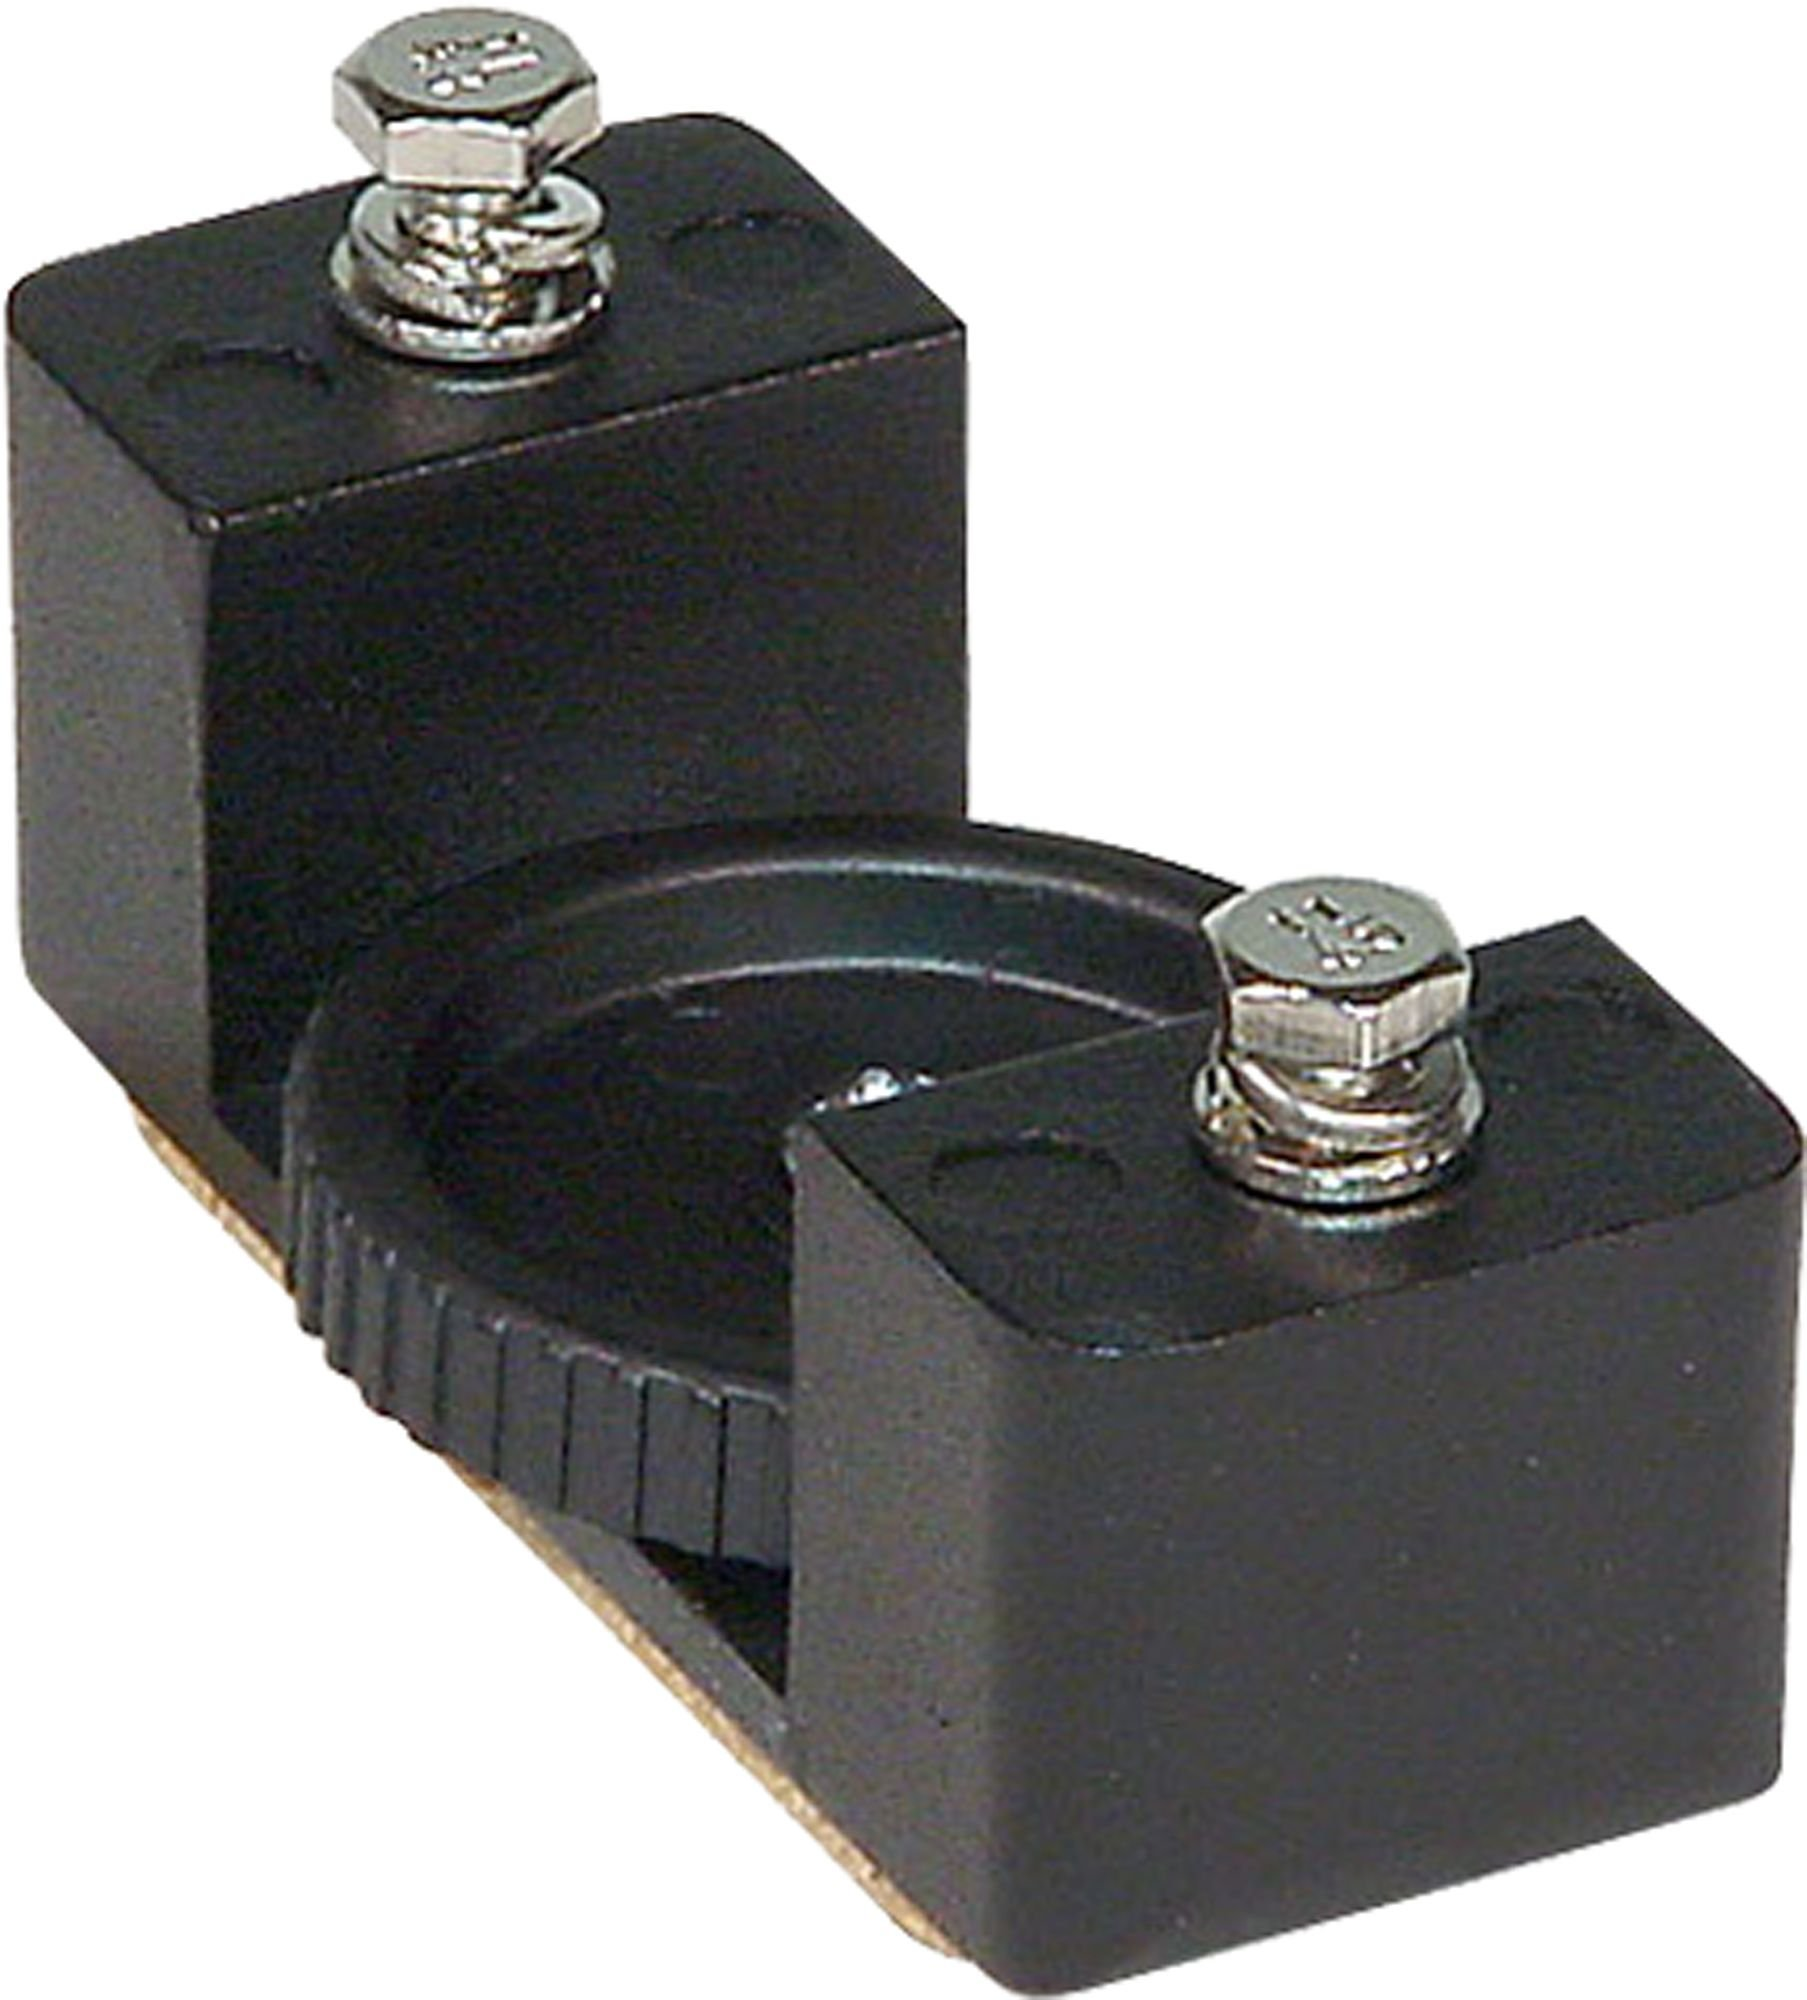 Orion 10103 1/4-Inch-20 Adapter for EQ1 Telescope Mount